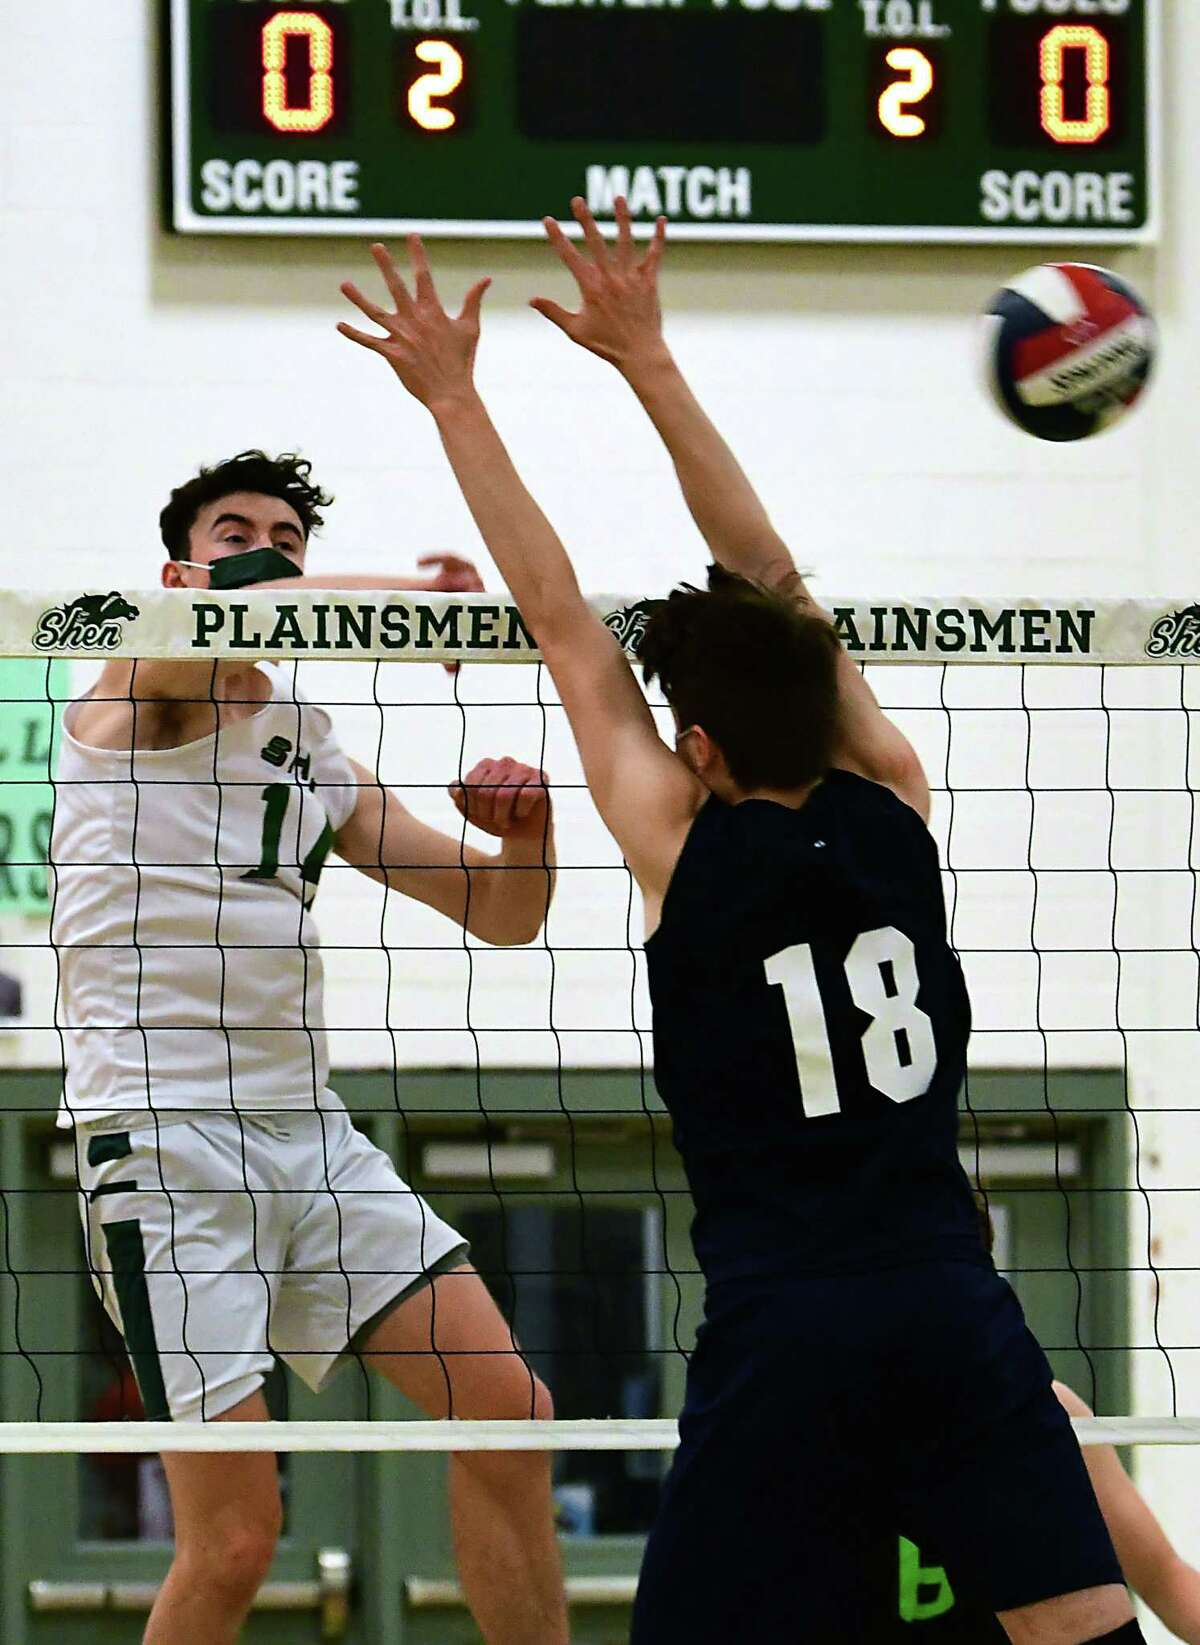 Shenendehowa's Will Licata spikes the ball past Columbia's Gabe Tucker during a volleyball game on Wednesday, April 28, 2021 in Clifton Park, N.Y. (Lori Van Buren/Times Union)